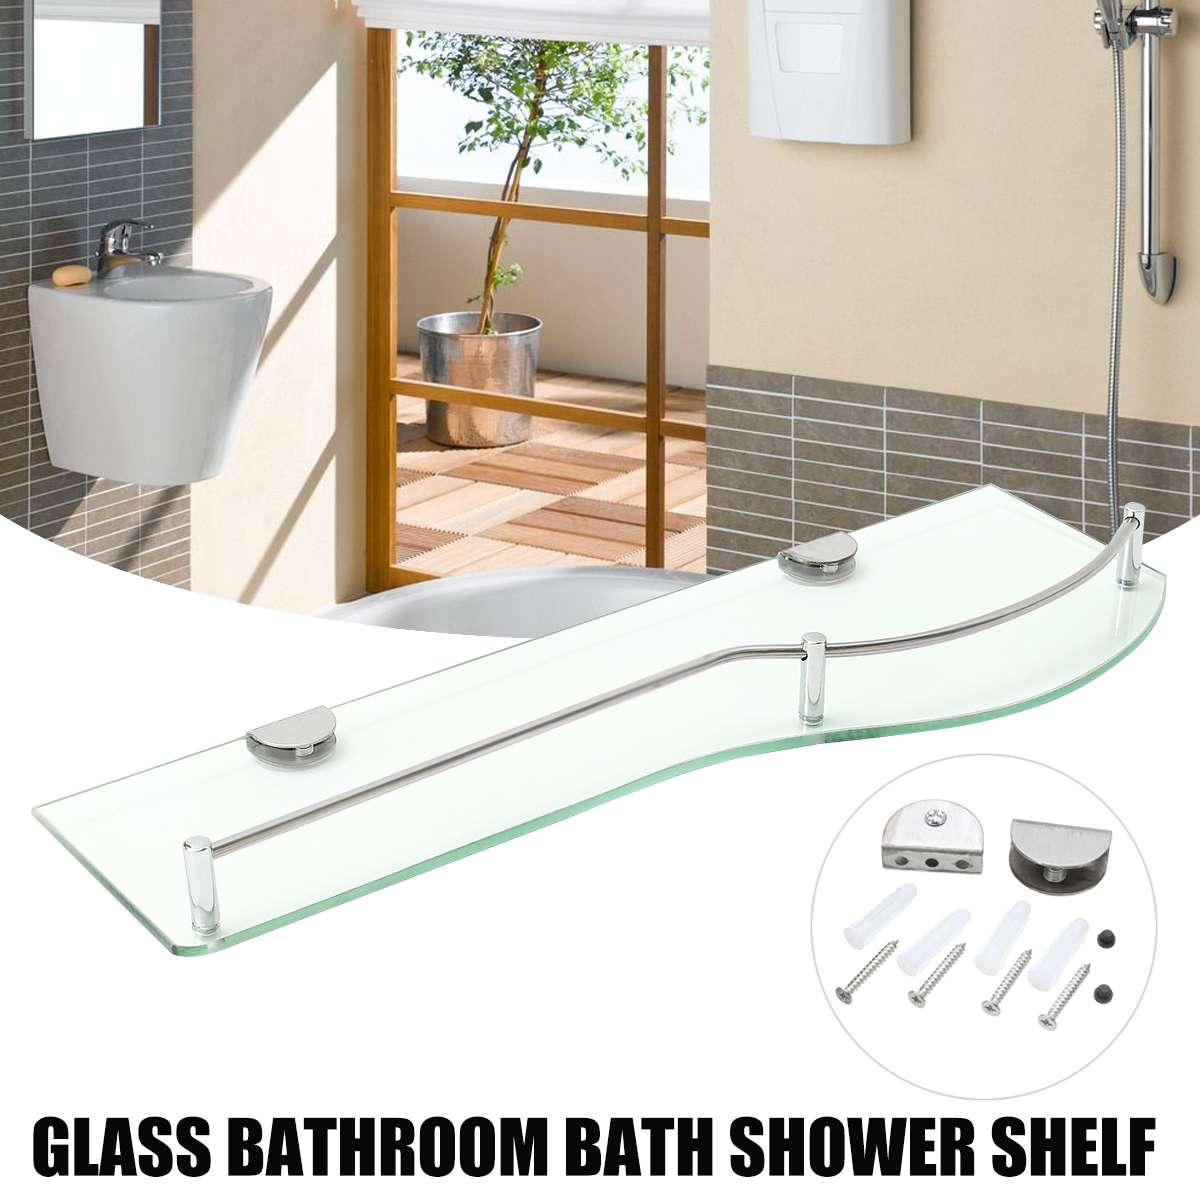 Us 20 17 8 Off Bathroom Shower Glass Shelf Storage Wall Mounted Glass Shelf For Bathroom Products Towel Toothbrush Cup Shelf In Bathroom Shelves